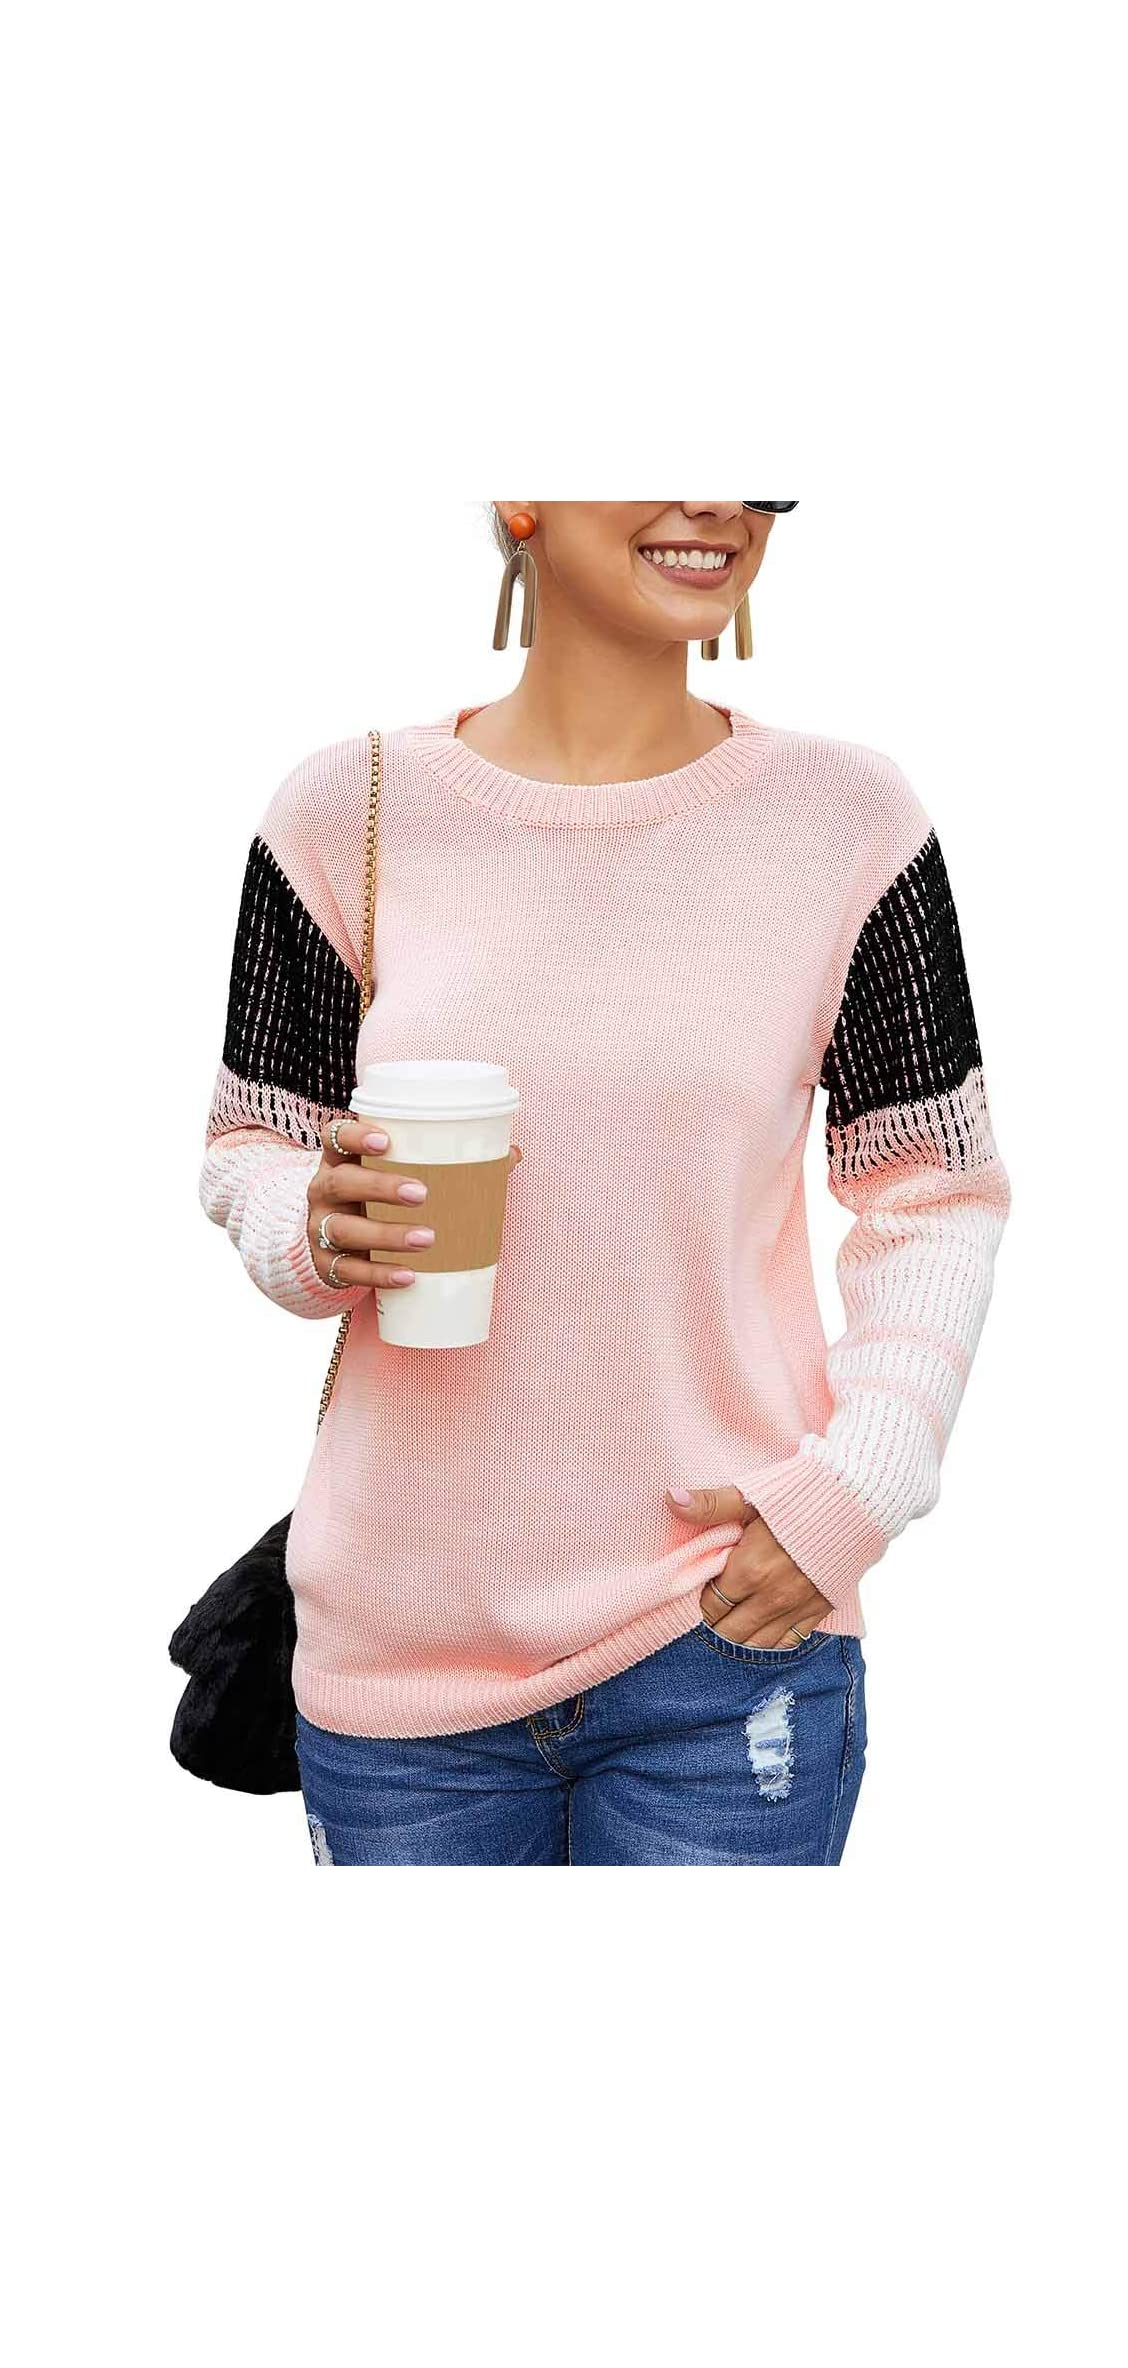 Women's Cute Contrast Sleeve Knitted Pullover Sweater